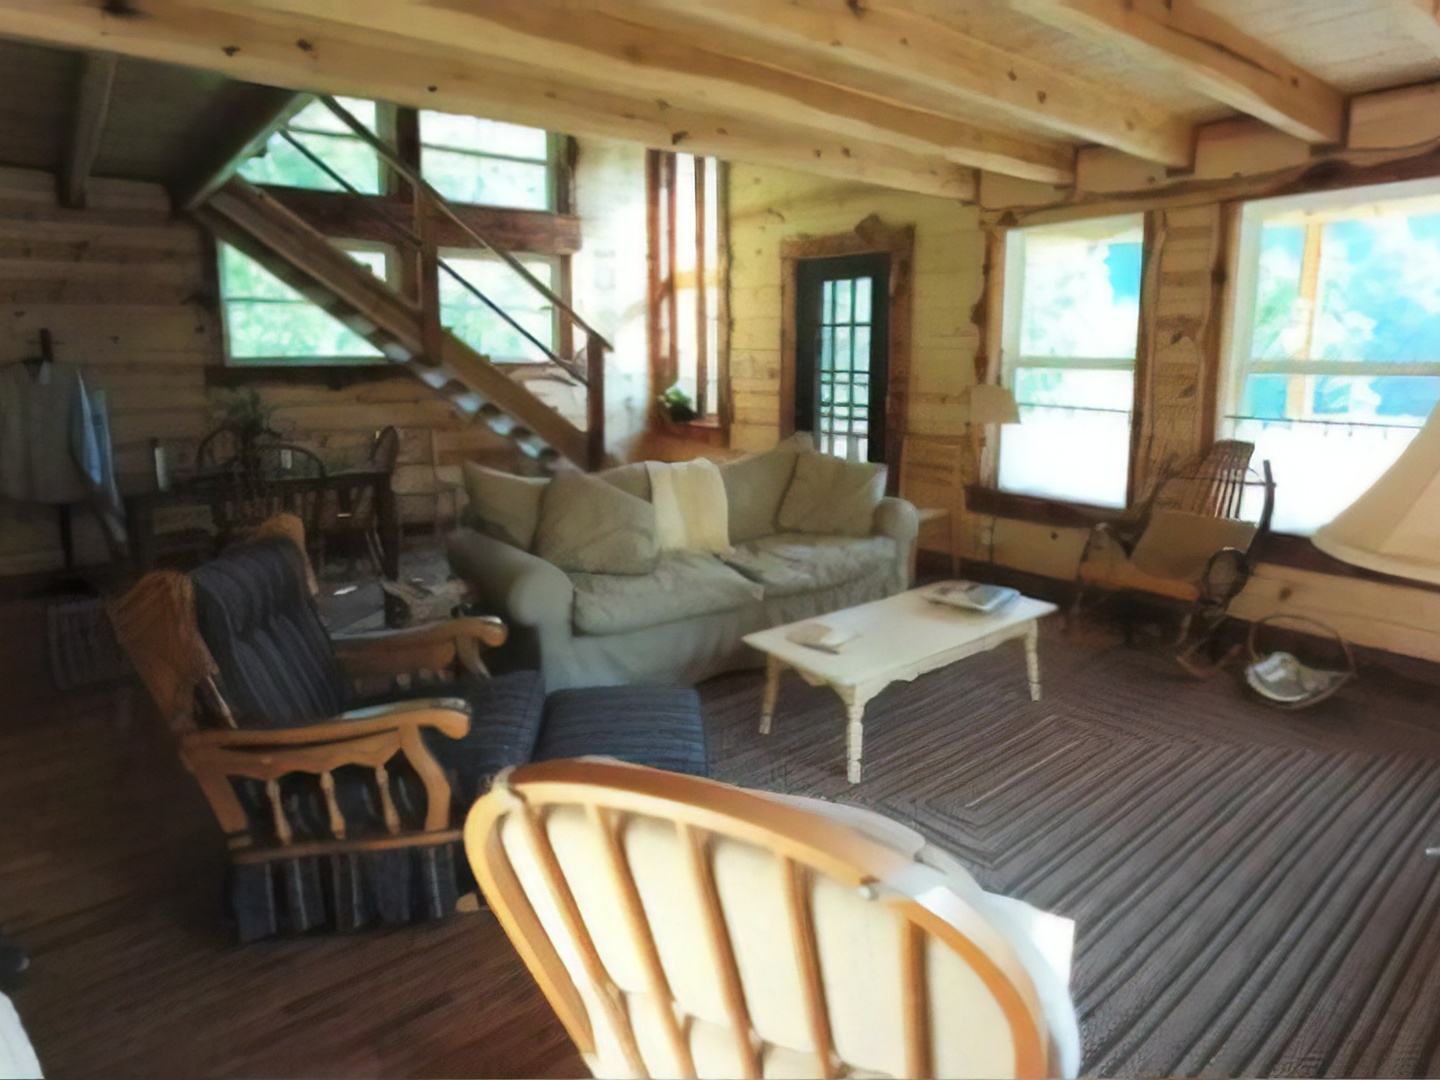 A living room filled with furniture and a large window at Snug Hollow Farm Bed and Breakfast.